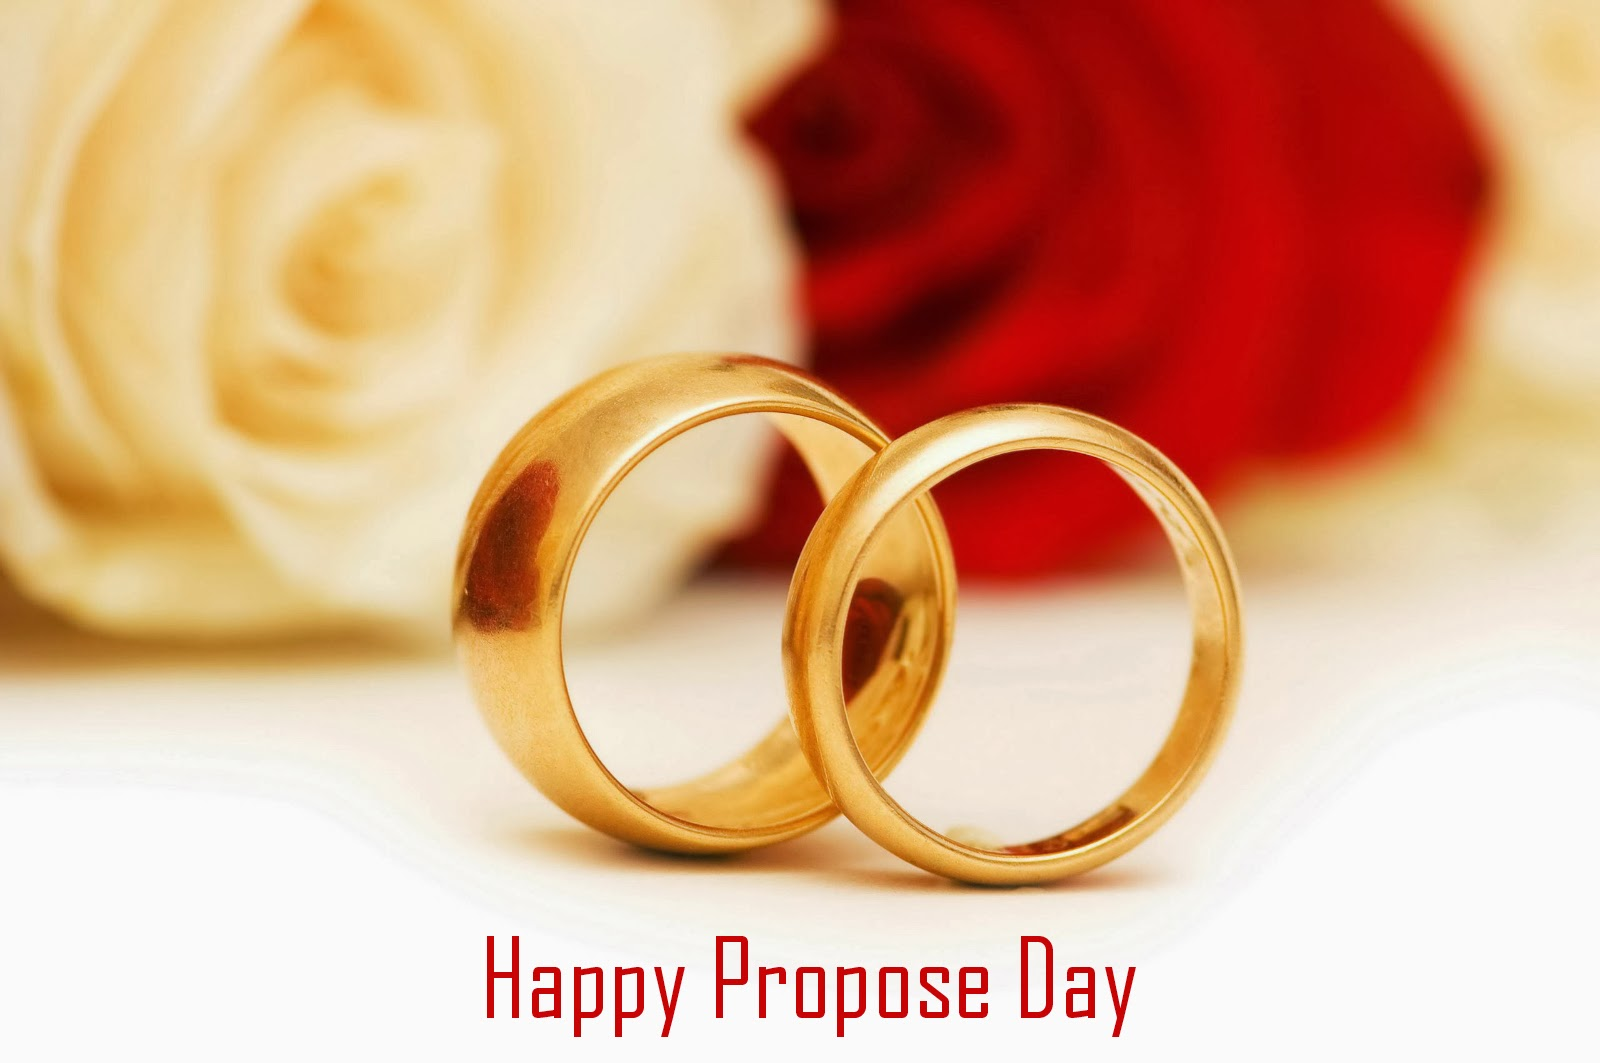 Best Propose Day 8th Feb HD Images For Desktop